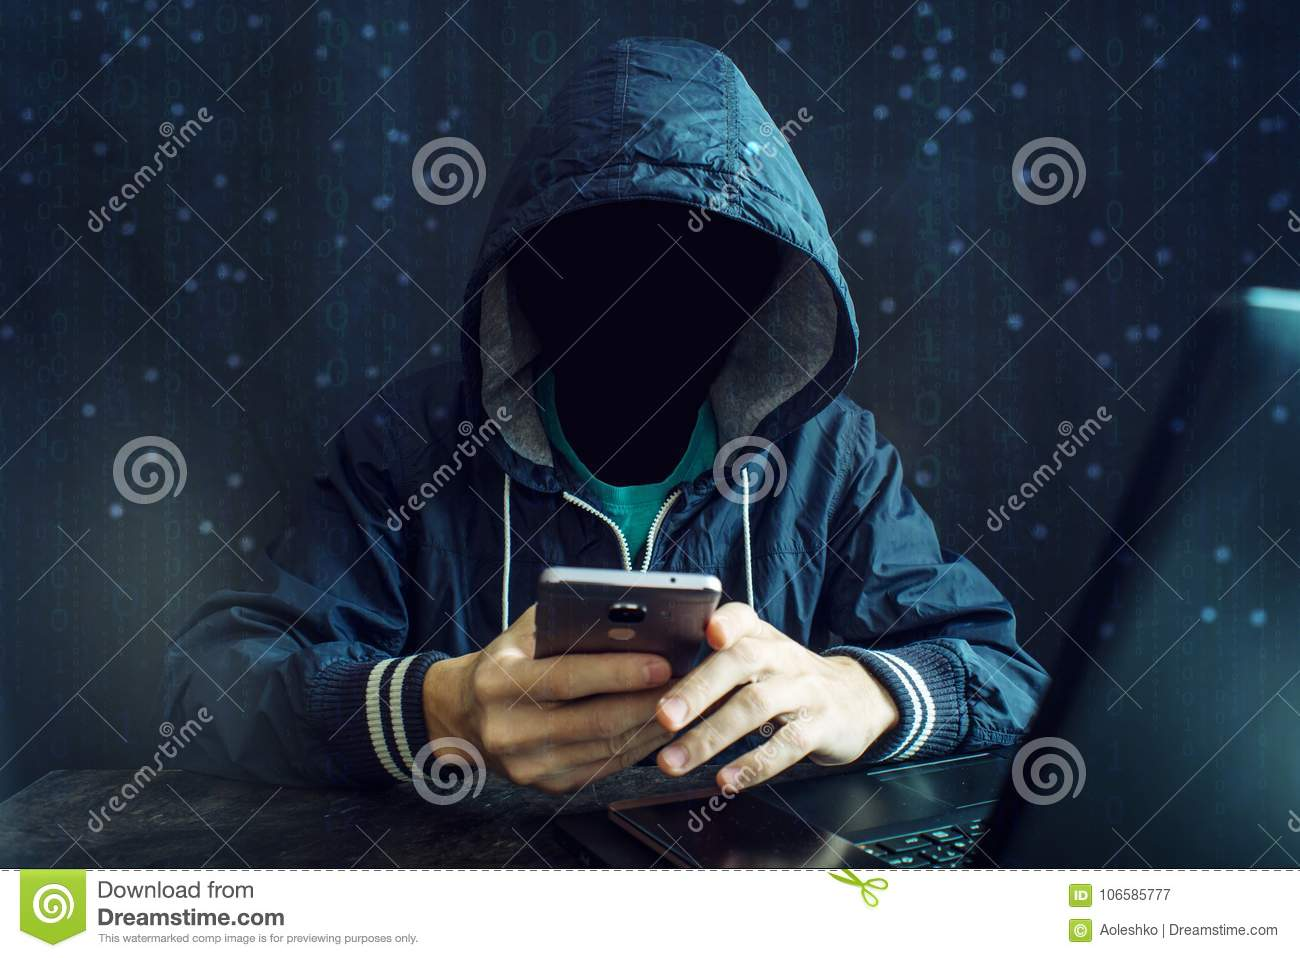 An anonymous hacker without a face uses a mobile phone to hack the system. The concept of cyber crime